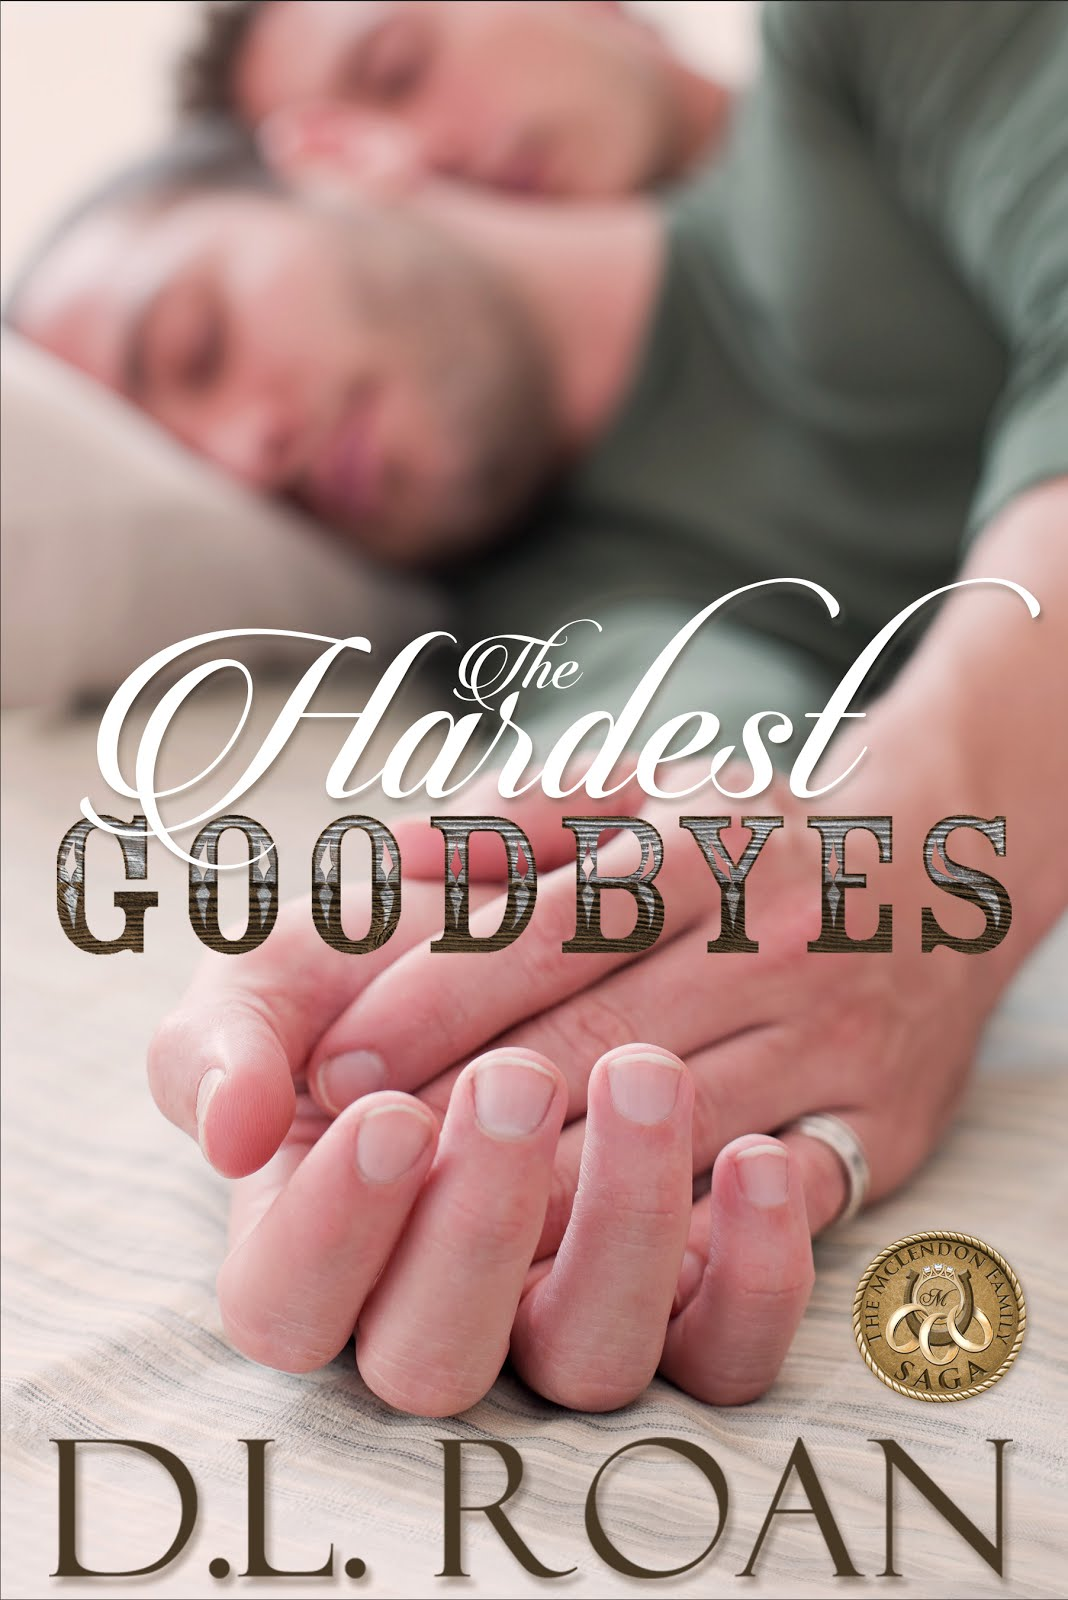 The Hardest Goodbyes